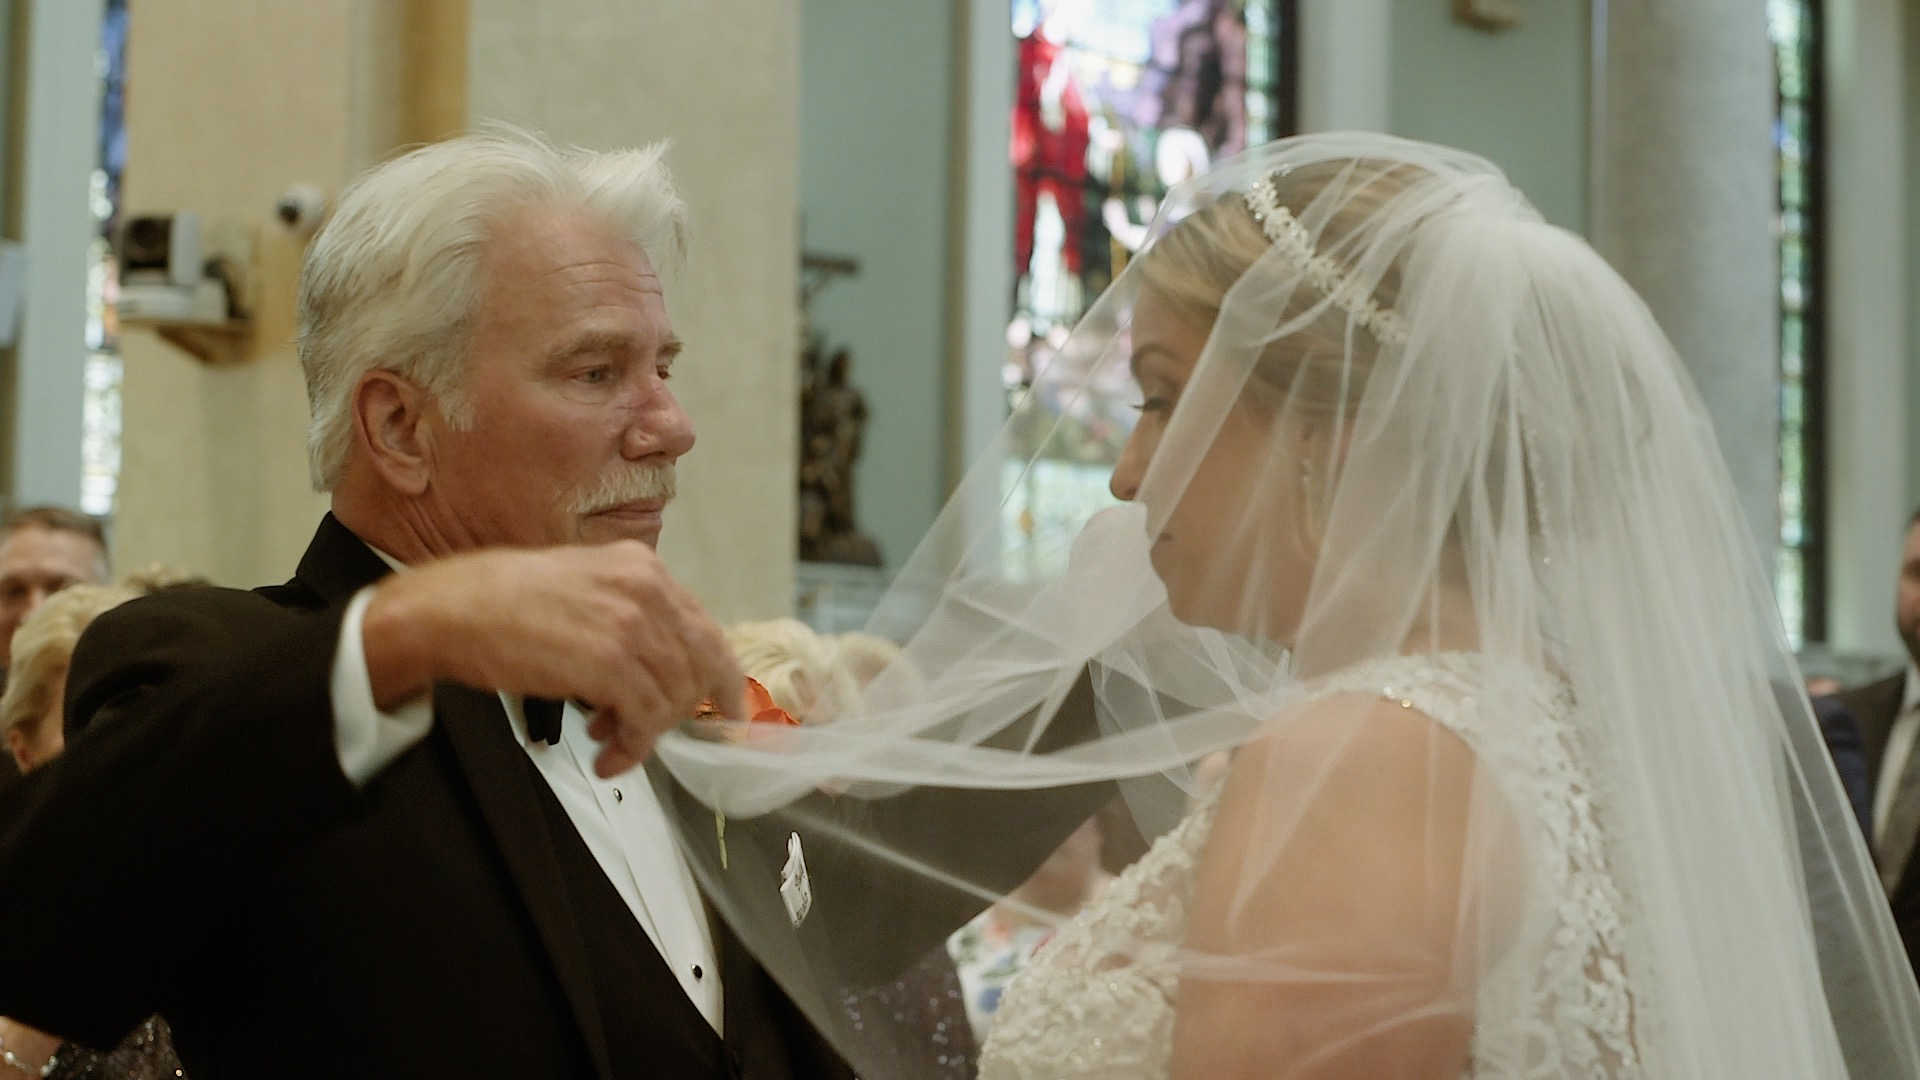 Father of the Bride lifts veil